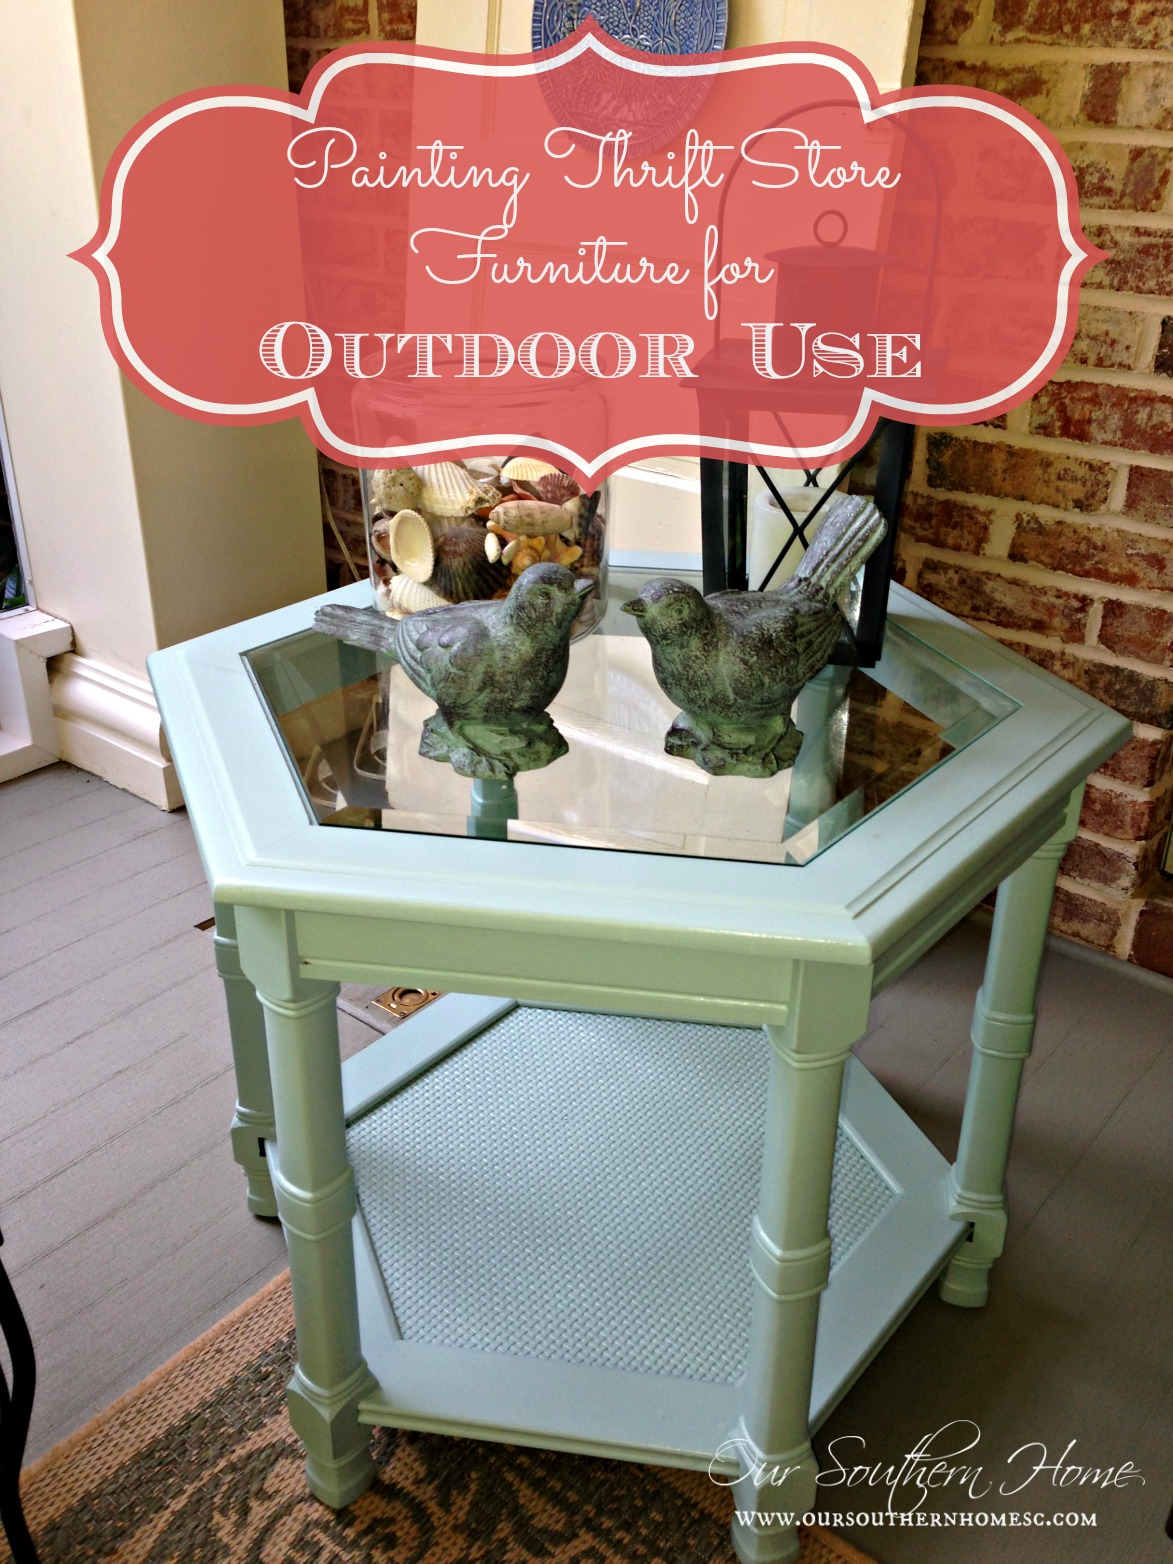 Painting Outdoor Furniture Thrift Store Find Our Southern Home